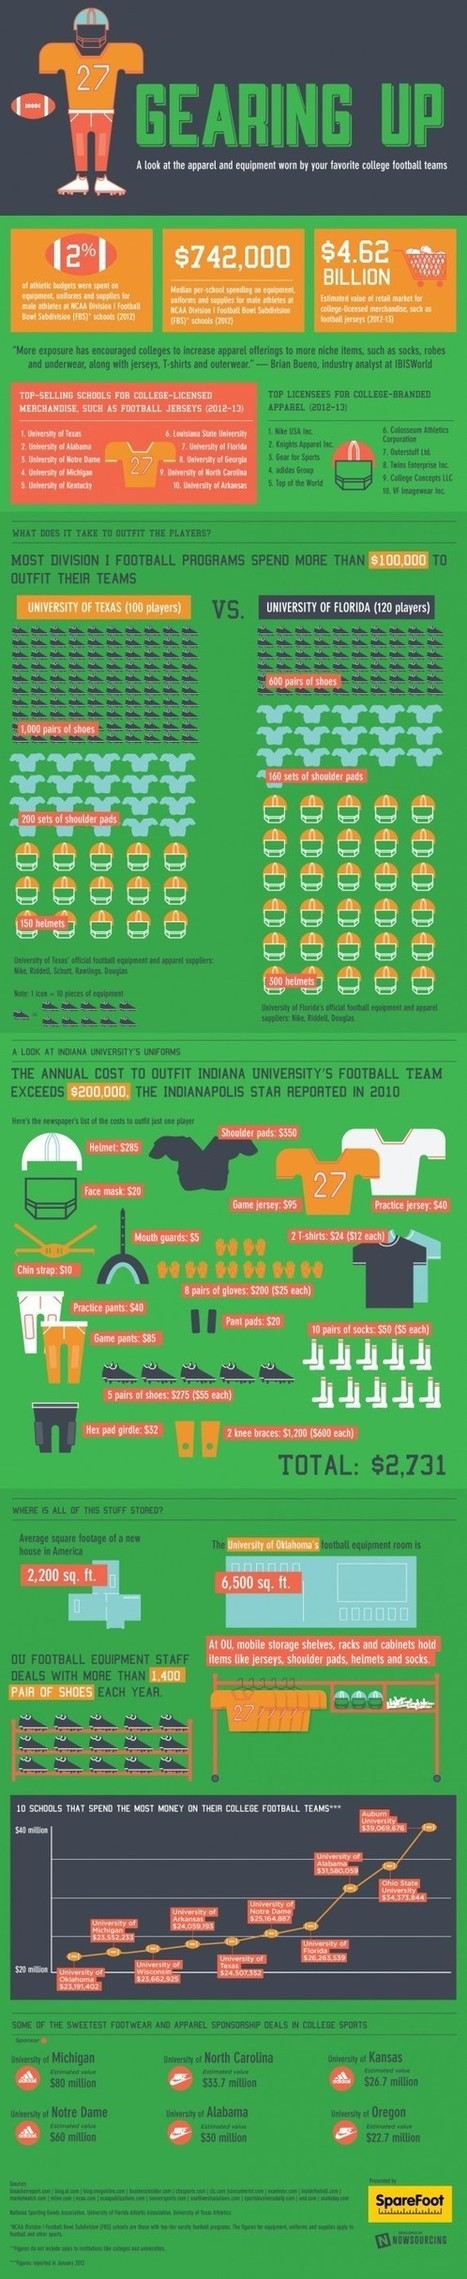 A look at the gear that college football teams wear - Front Page Buzz | Sports Magazine: Croston, C. | Scoop.it